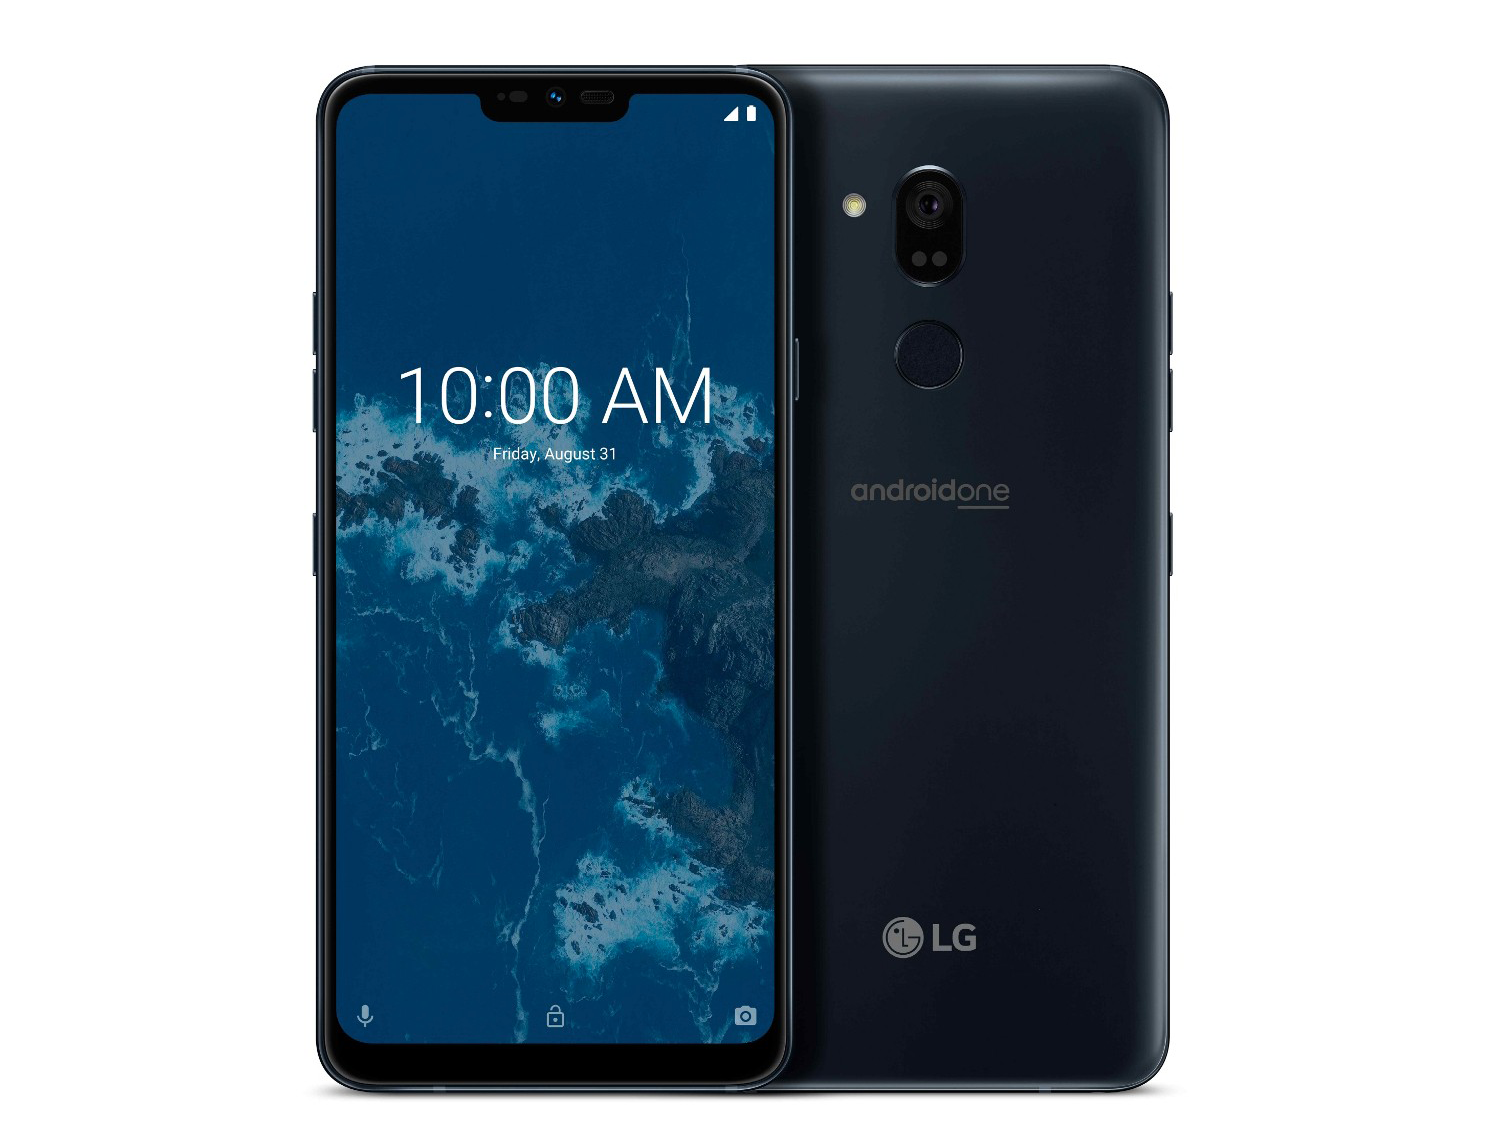 LG officially unveils the G7 One and G7 Fit